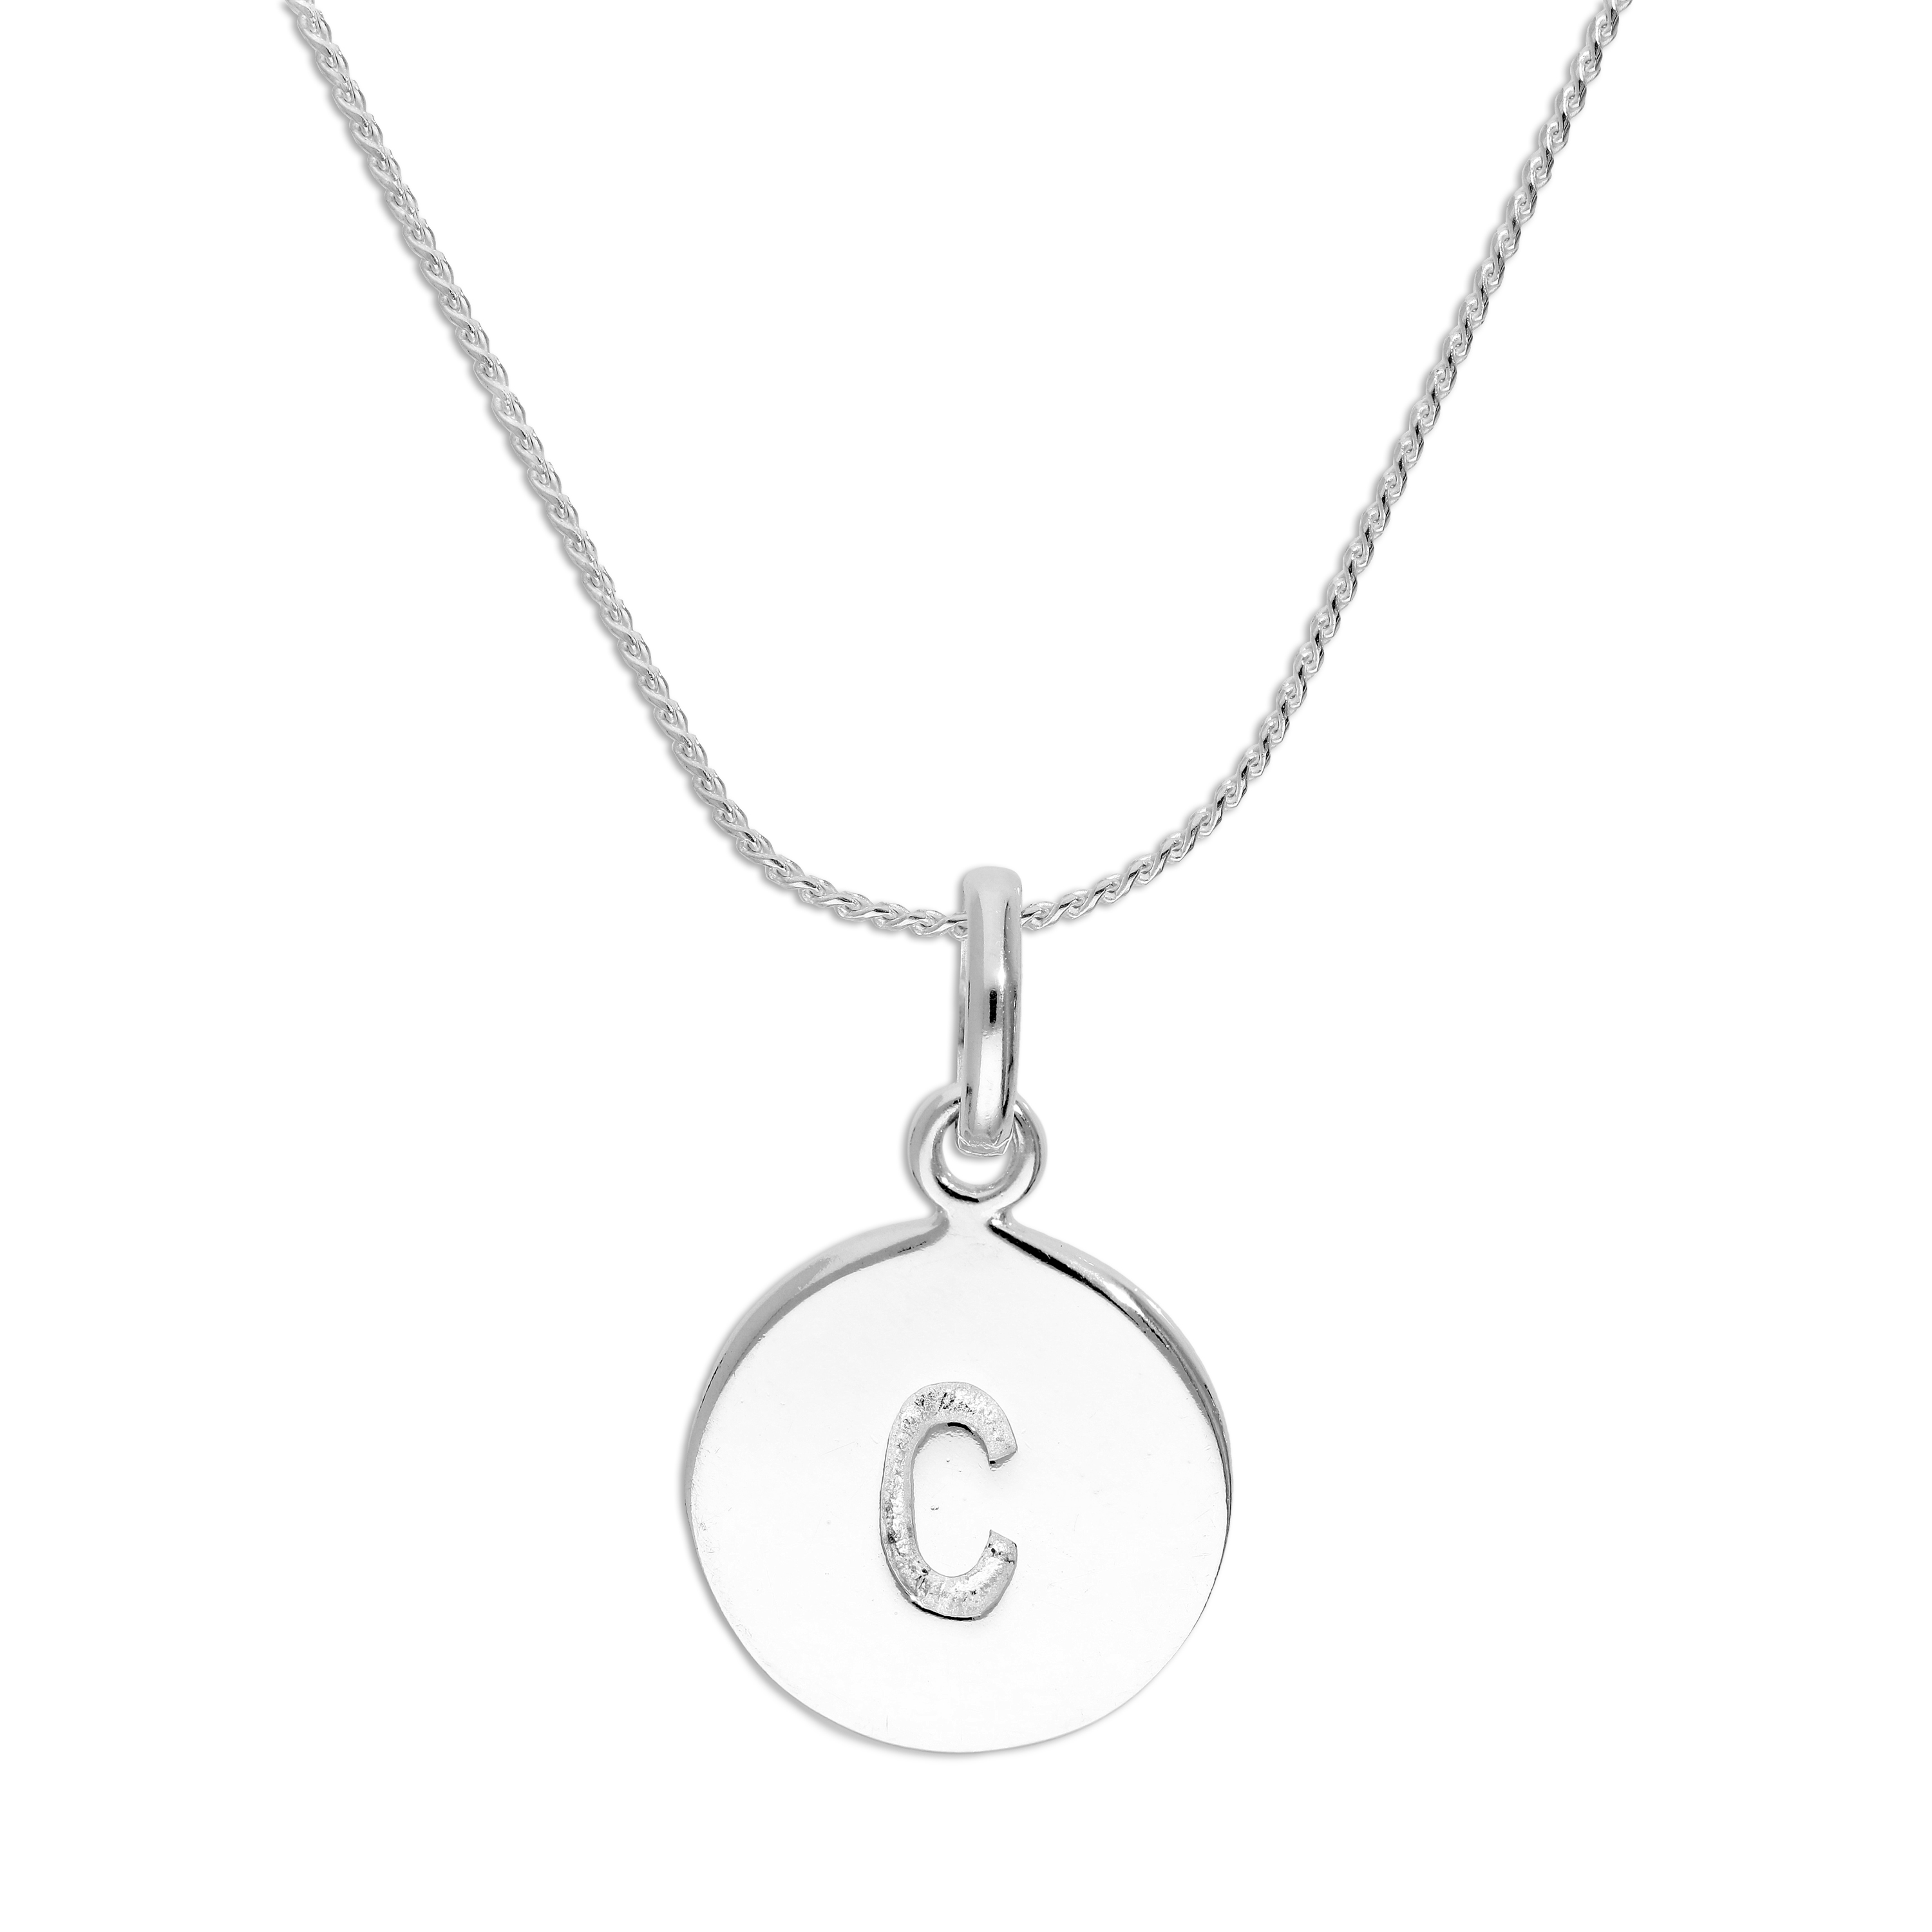 An image of Sterling Silver Initial Letter C Necklace 18 Inches Blue